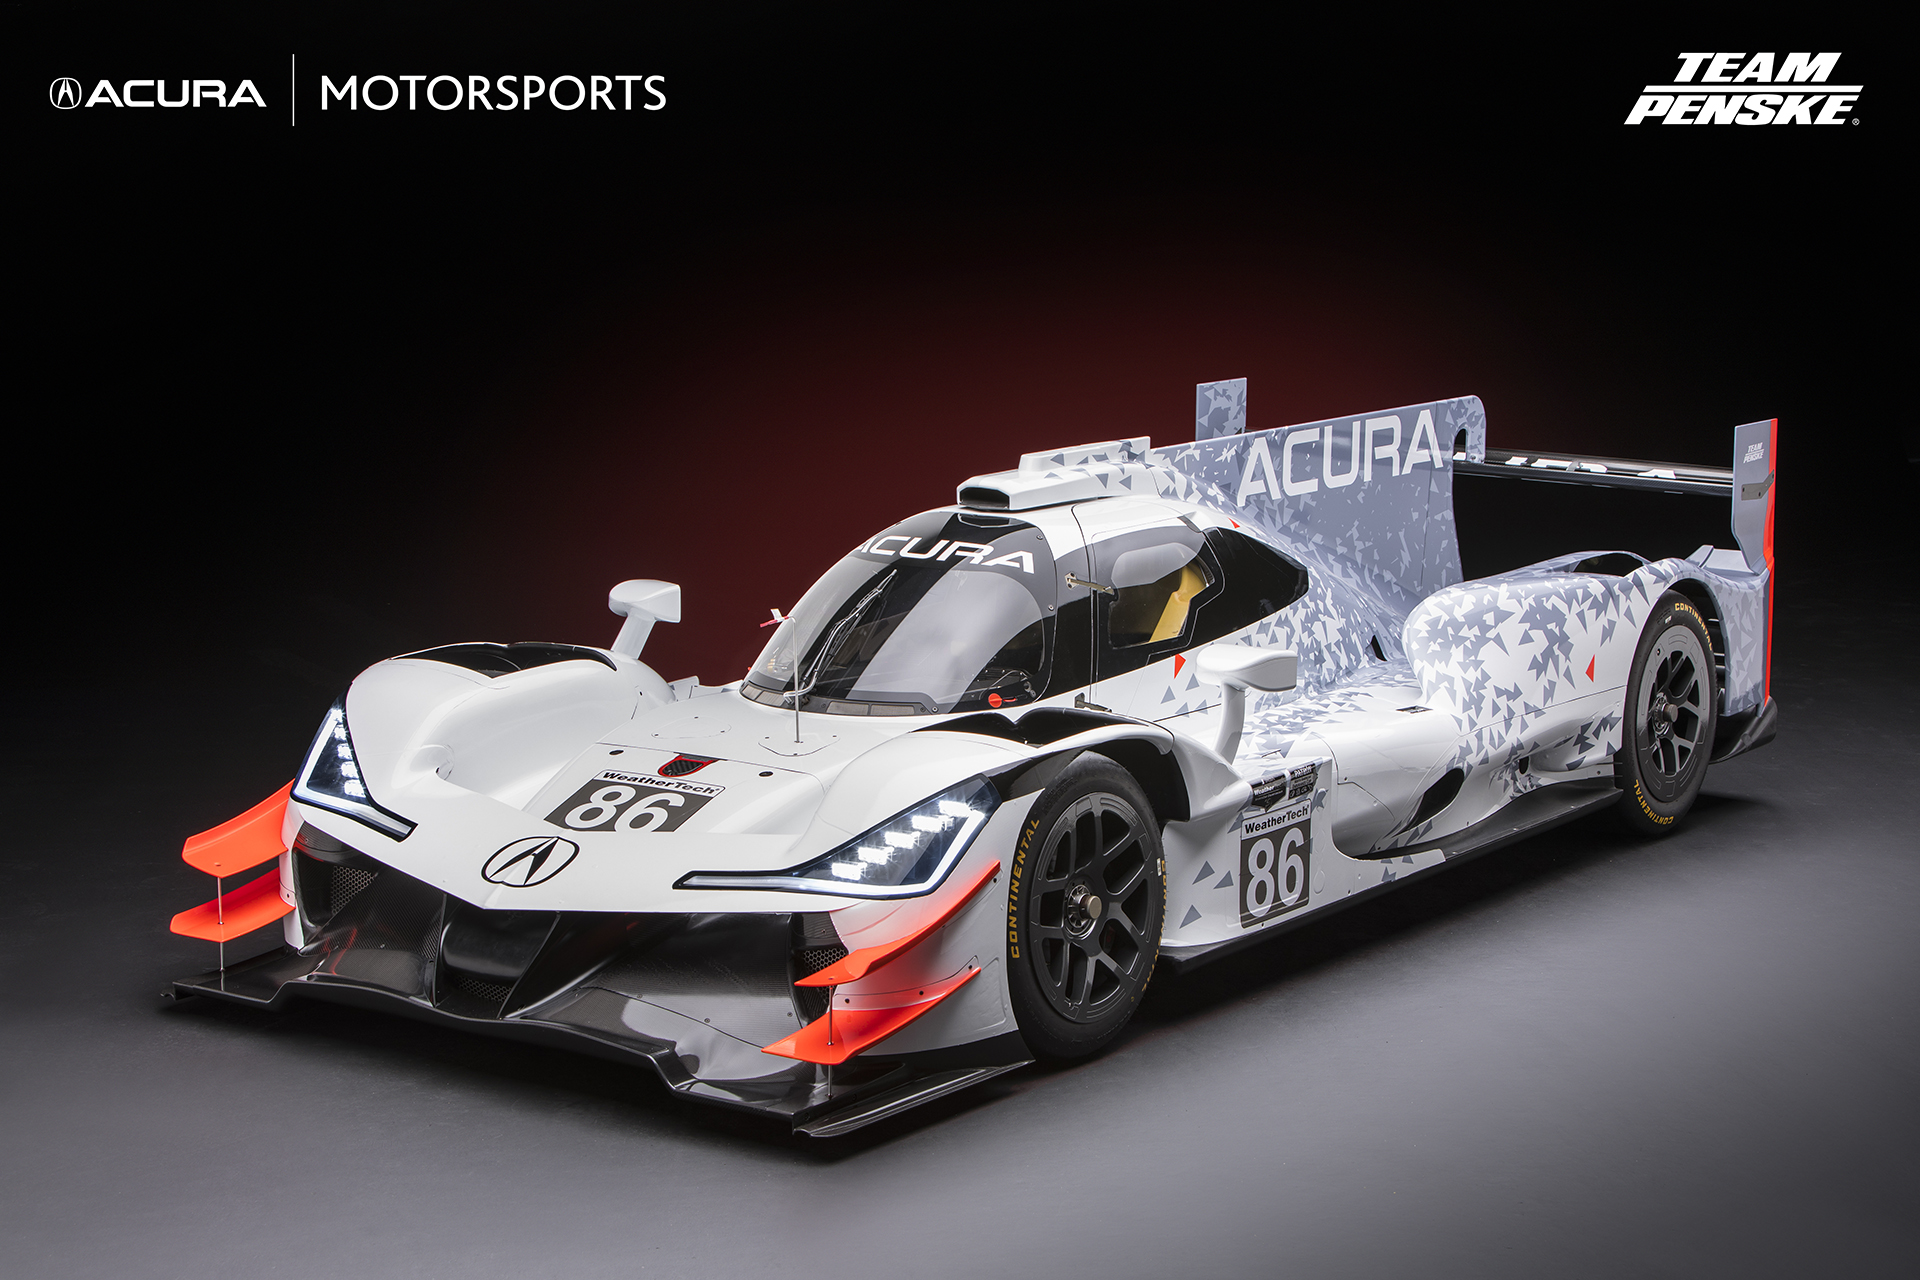 2018 Indy Car Wallpaper Team Penske Unveils 2018 Acura Arx 05 Dpi Race Car For